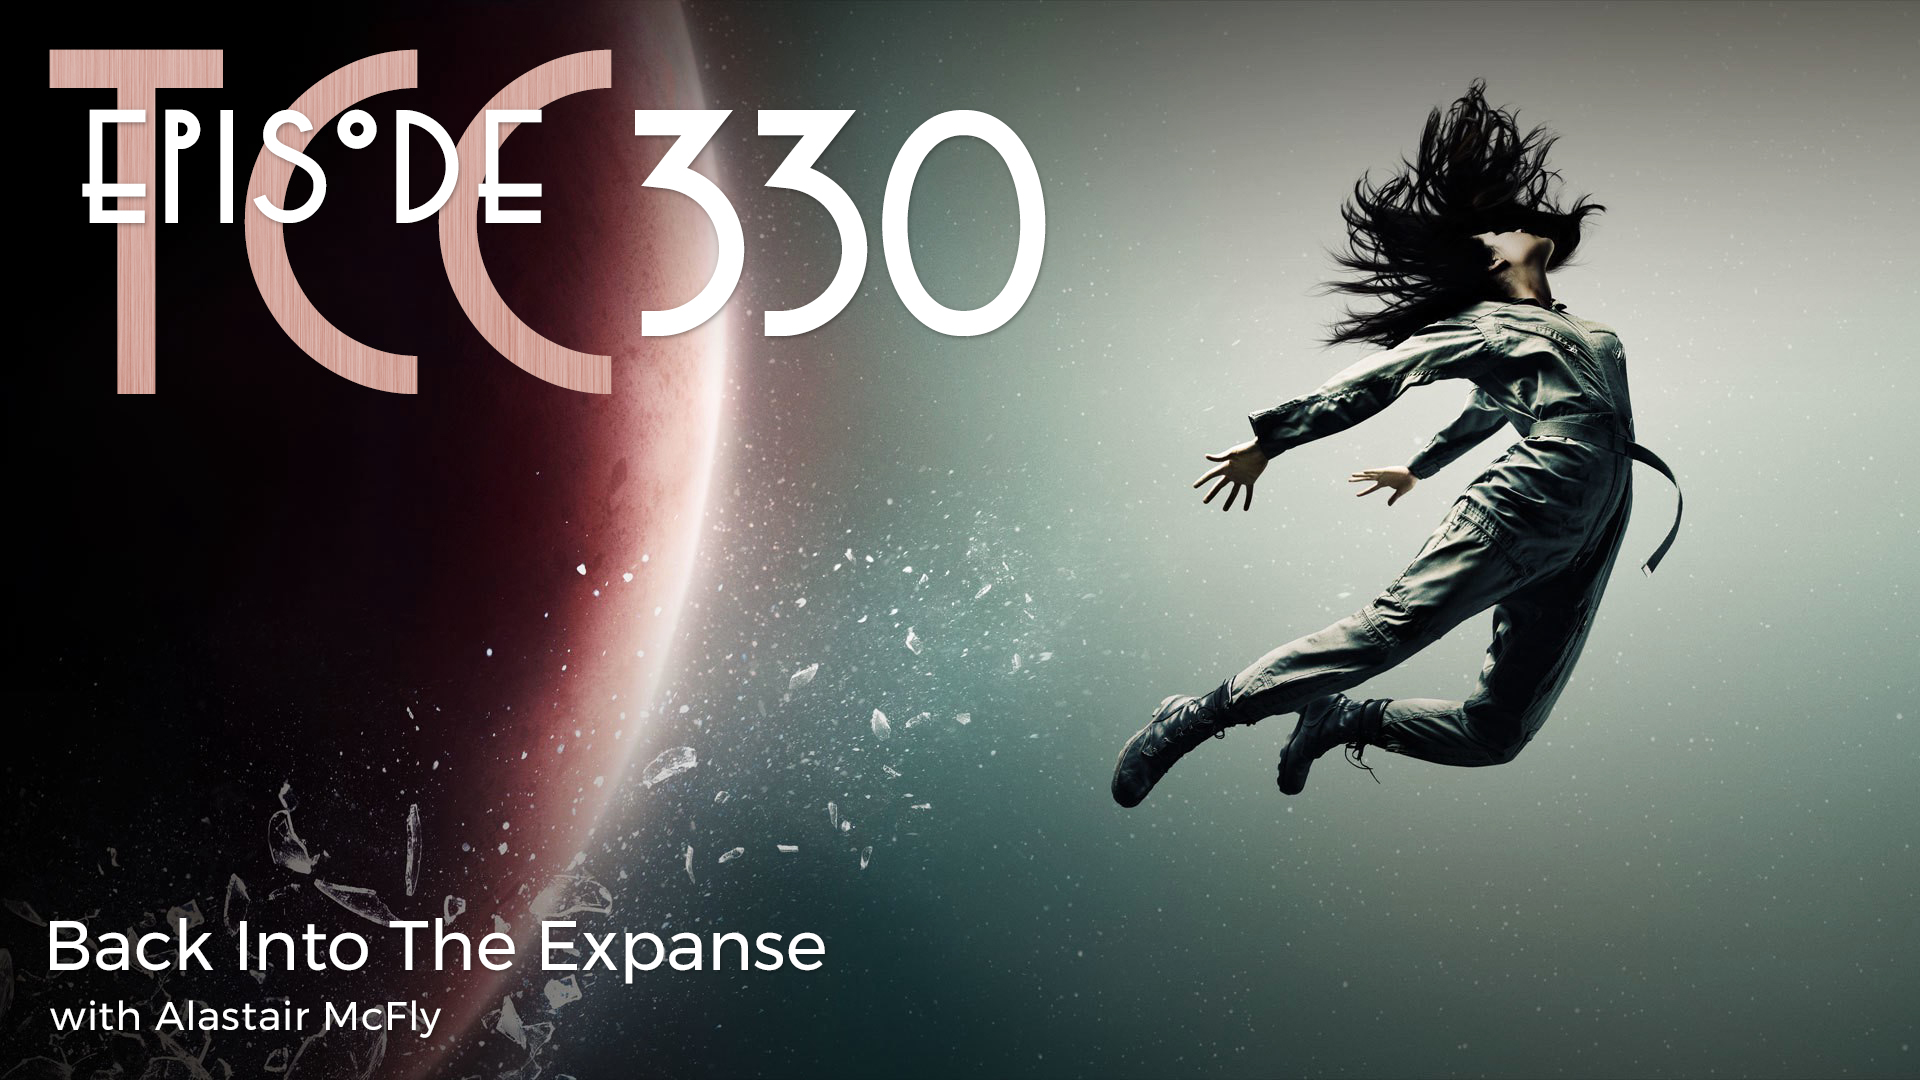 The Citadel Cafe 330: Back Into The Expanse - The Citadel